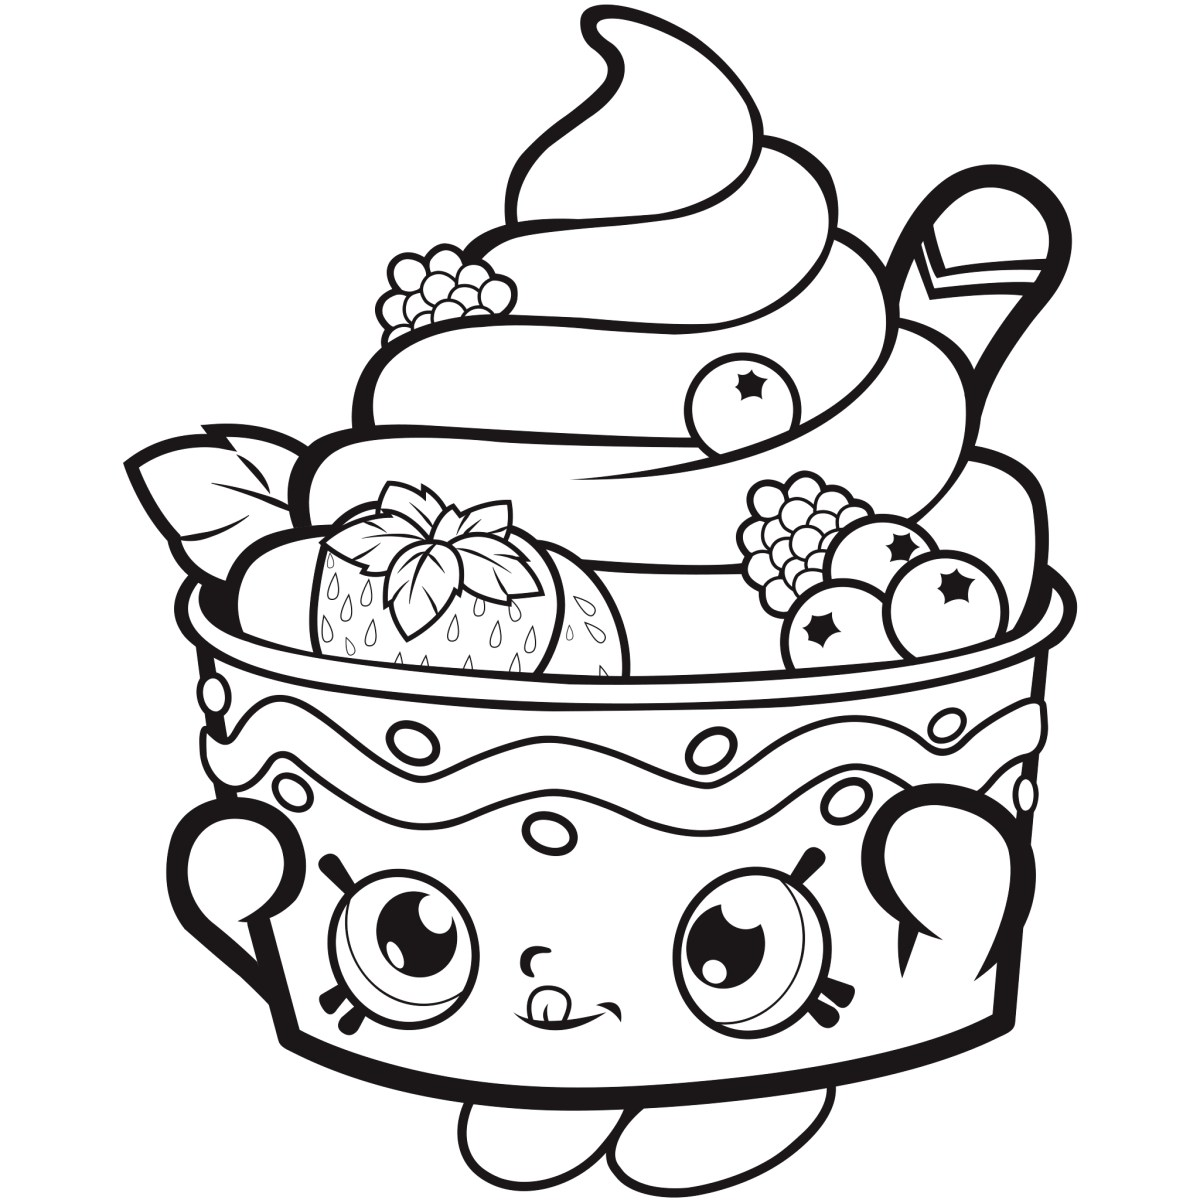 Shopkins Coloring Pages To Print Free Shopkins Coloring